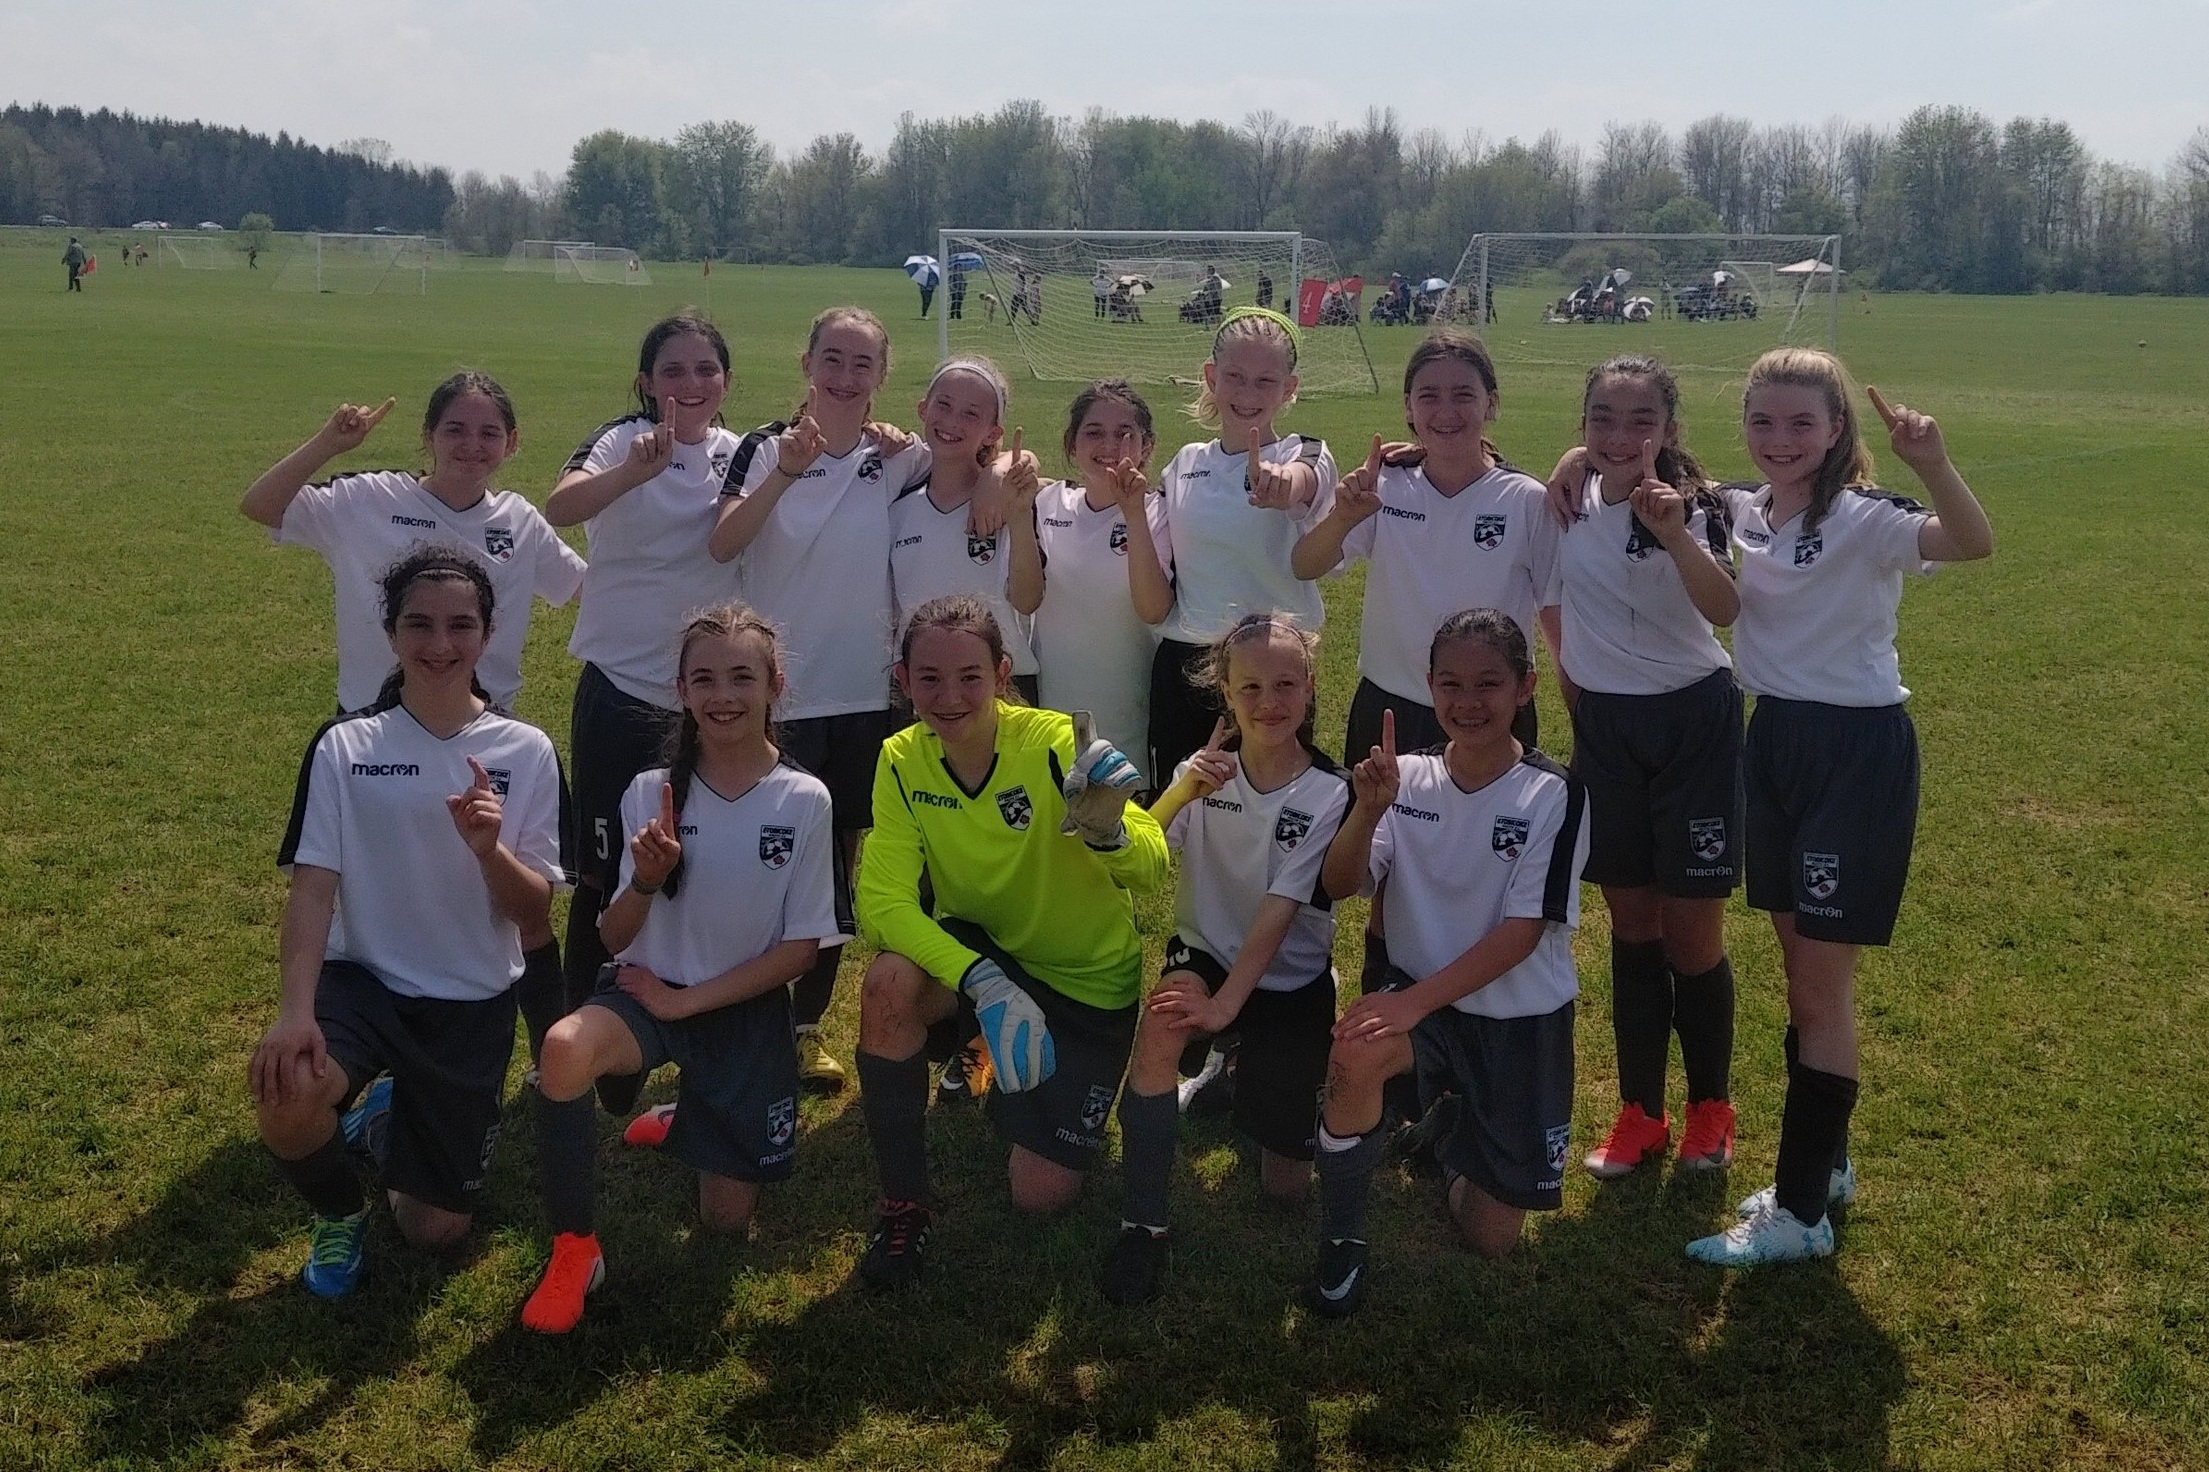 Girls U12 2007 Green Team. May 18th weekend. Congratulations to the team who were Champions at the Empire Cup Spring Classic in the United States. Well done!